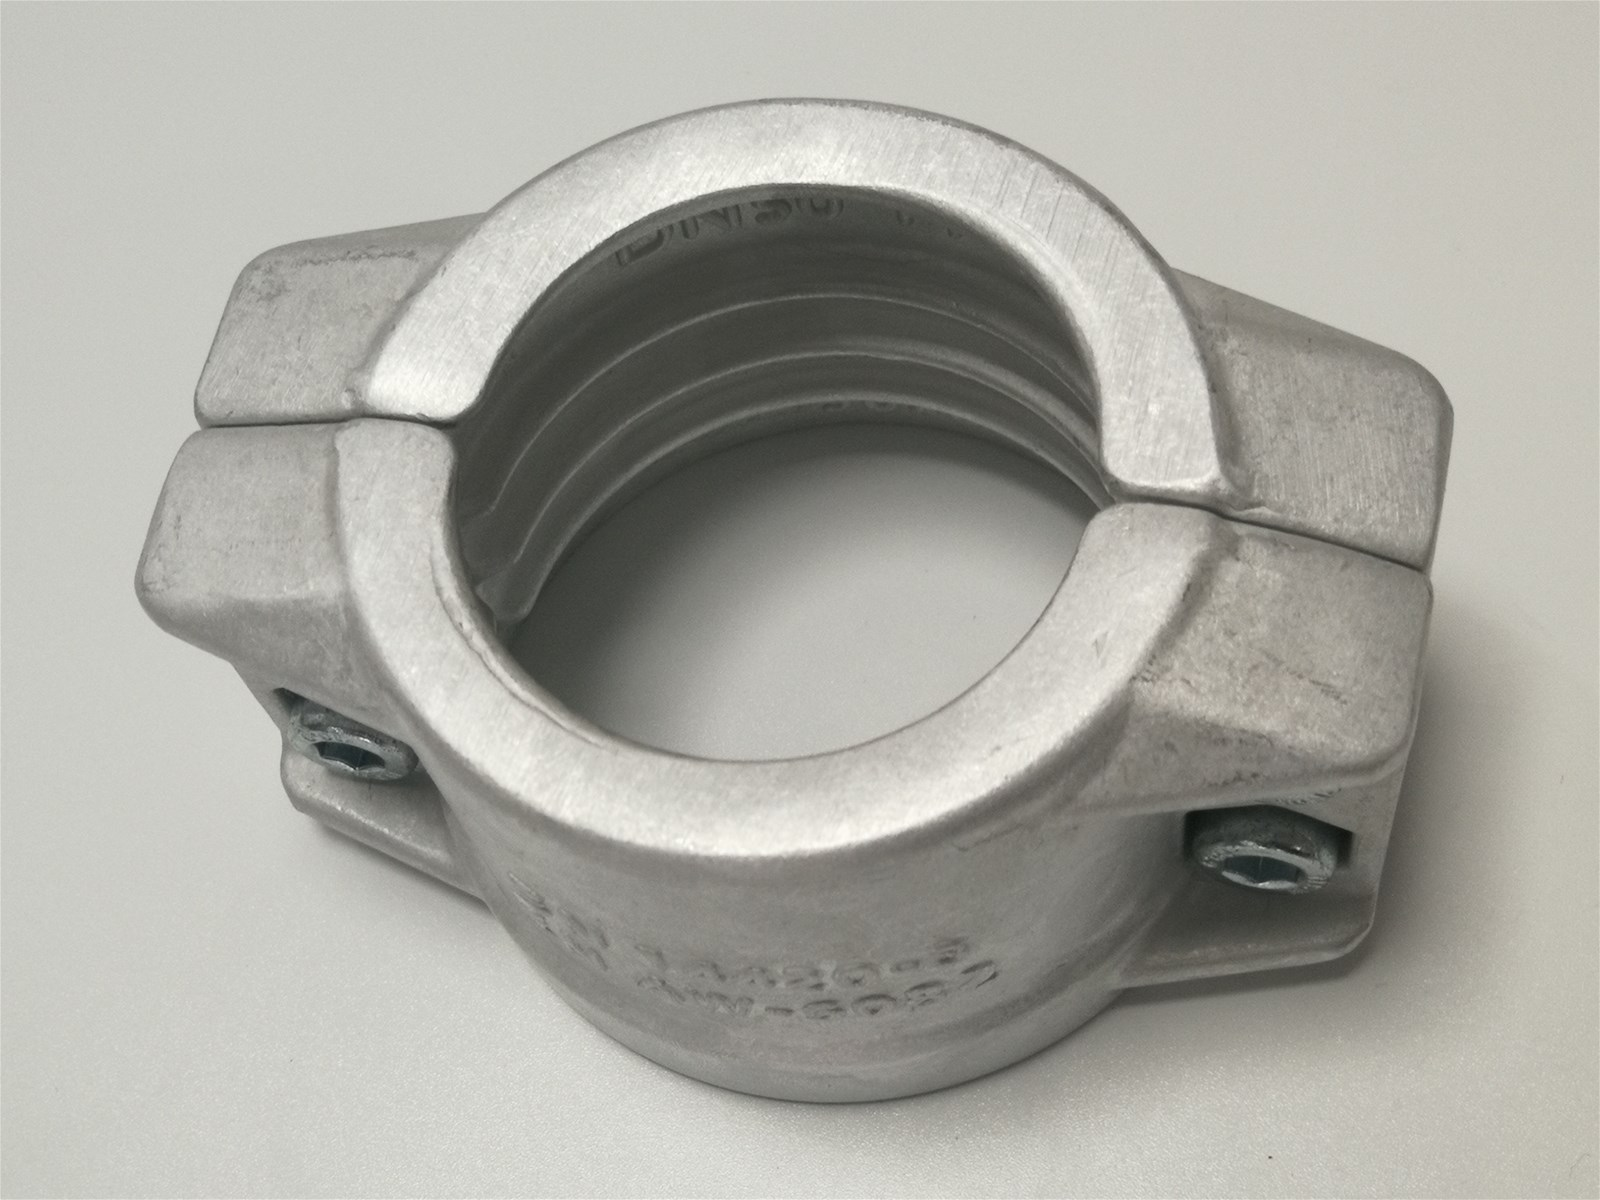 Stainless SteelAluminum Hose Tail Coupling Casting Forging DIN 2817 Fittings Safety Clamps